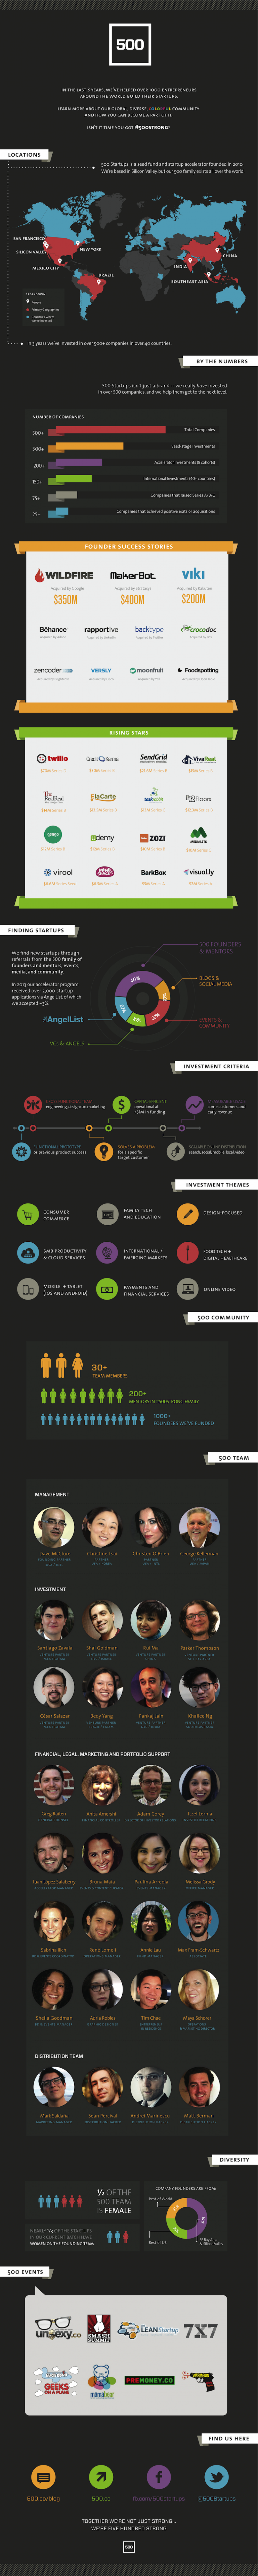 3 Year Review of Seed Fund, Startup Accelerator @500Startups [Infographic]